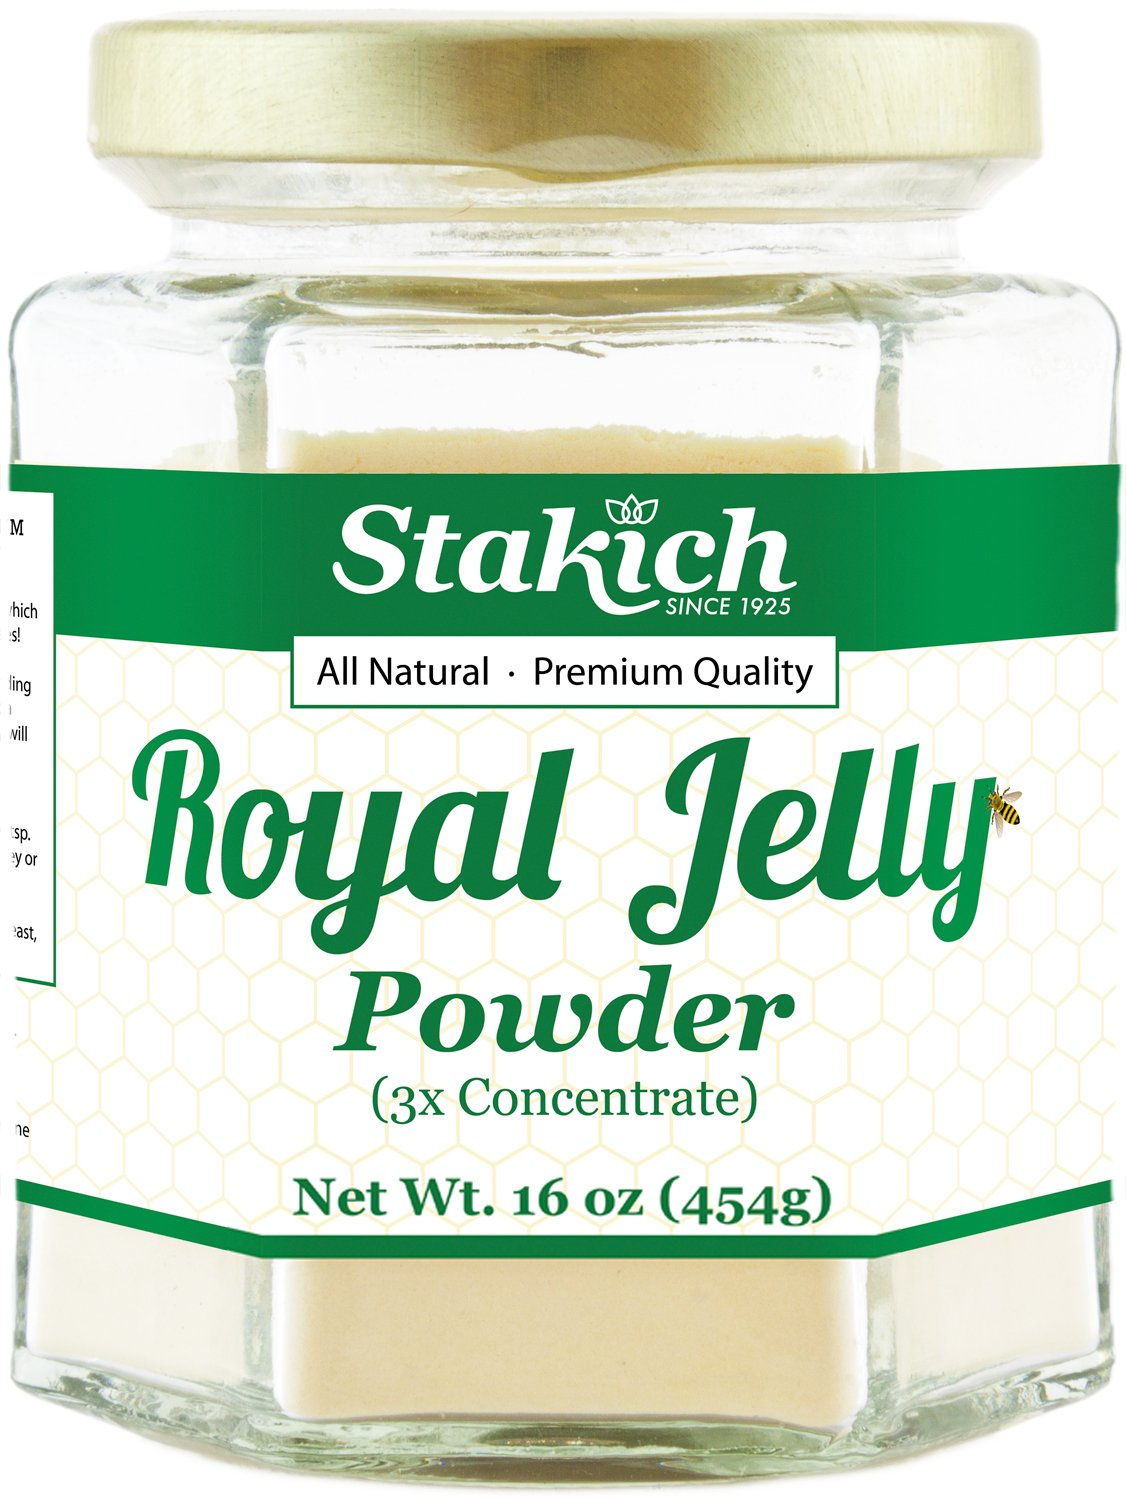 Stakich Freeze Dried FRESH ROYAL JELLY Powder 1 lb (454 g) - 3X Concentrate, 100% Pure, Premium Quality, High Potency -